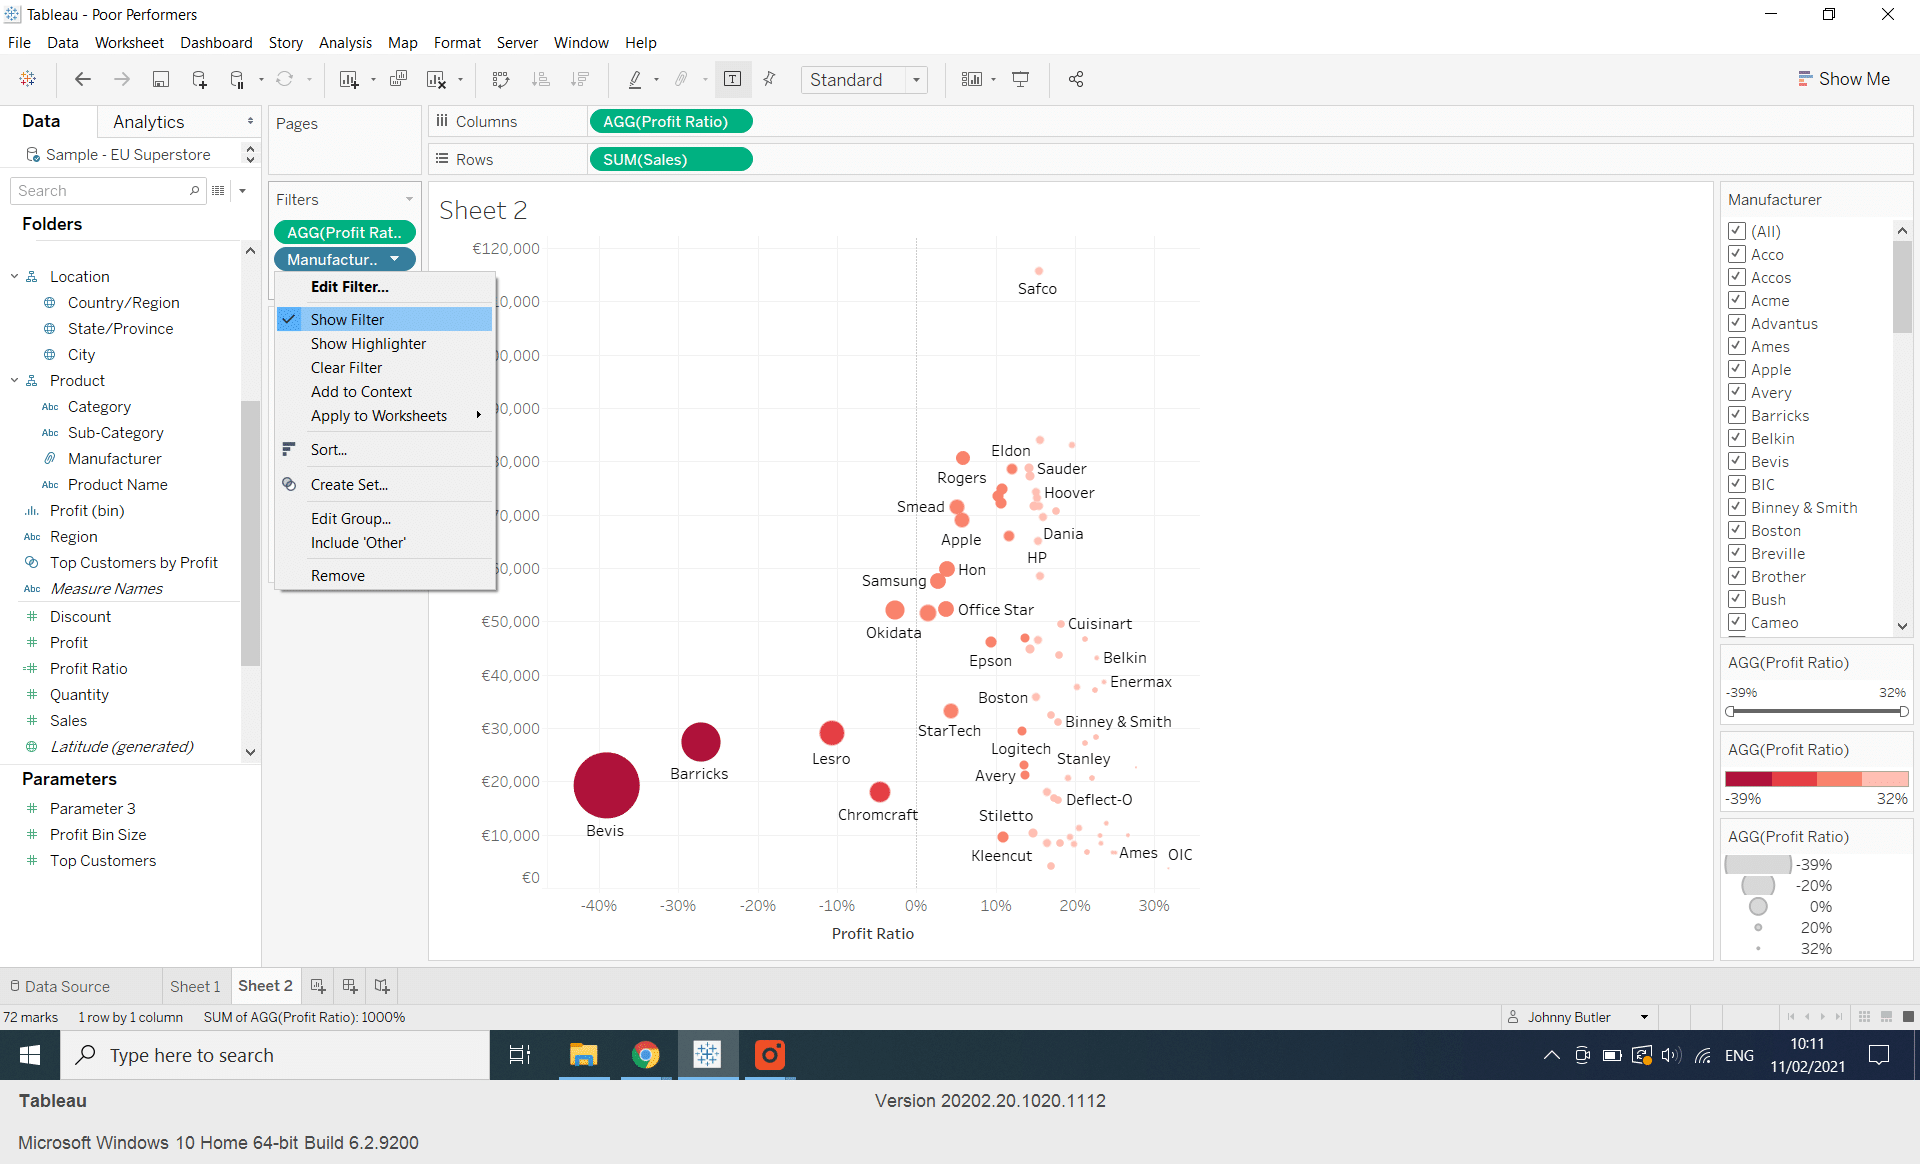 How do I build a Scatterplot in Tableau to Highlight Poor Performers?